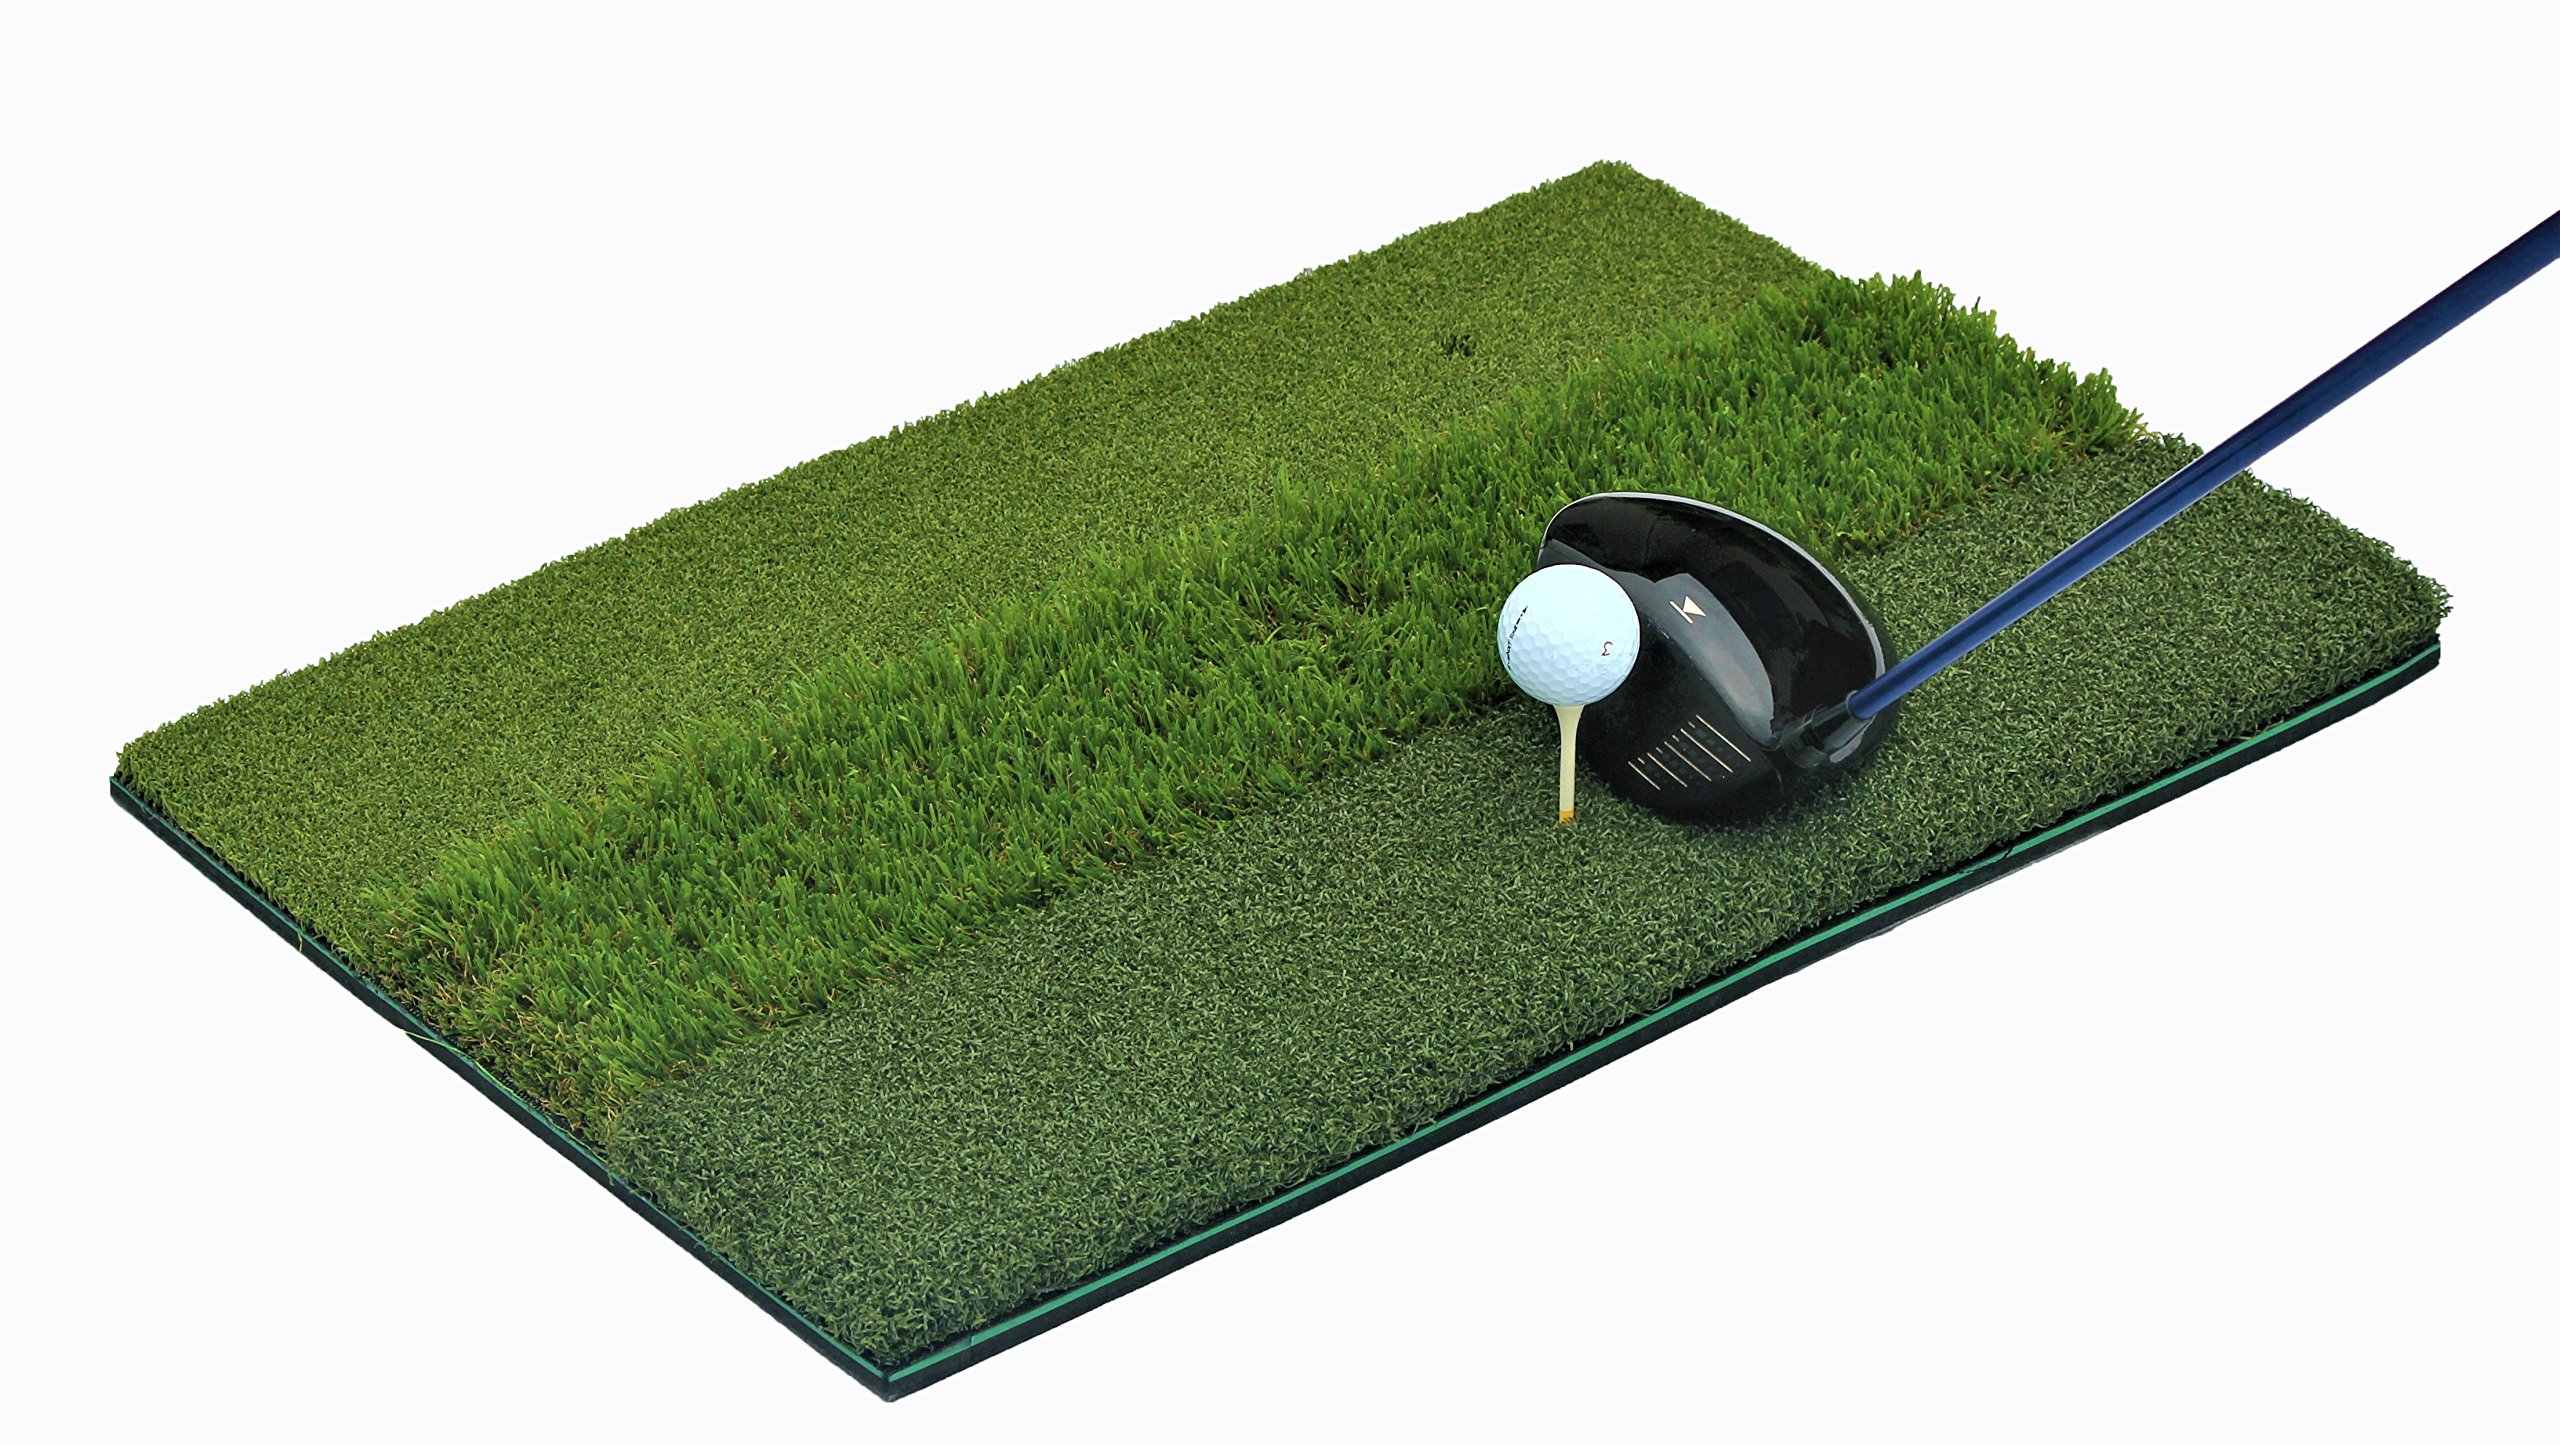 That'll Play - Premium Golf Tri-Turf Hitting Grass Mat - Rough & Fairway, Portable, Training Mat - Great Driving Mat for Backyard Practice and Training for Professional Swinging & Hitting